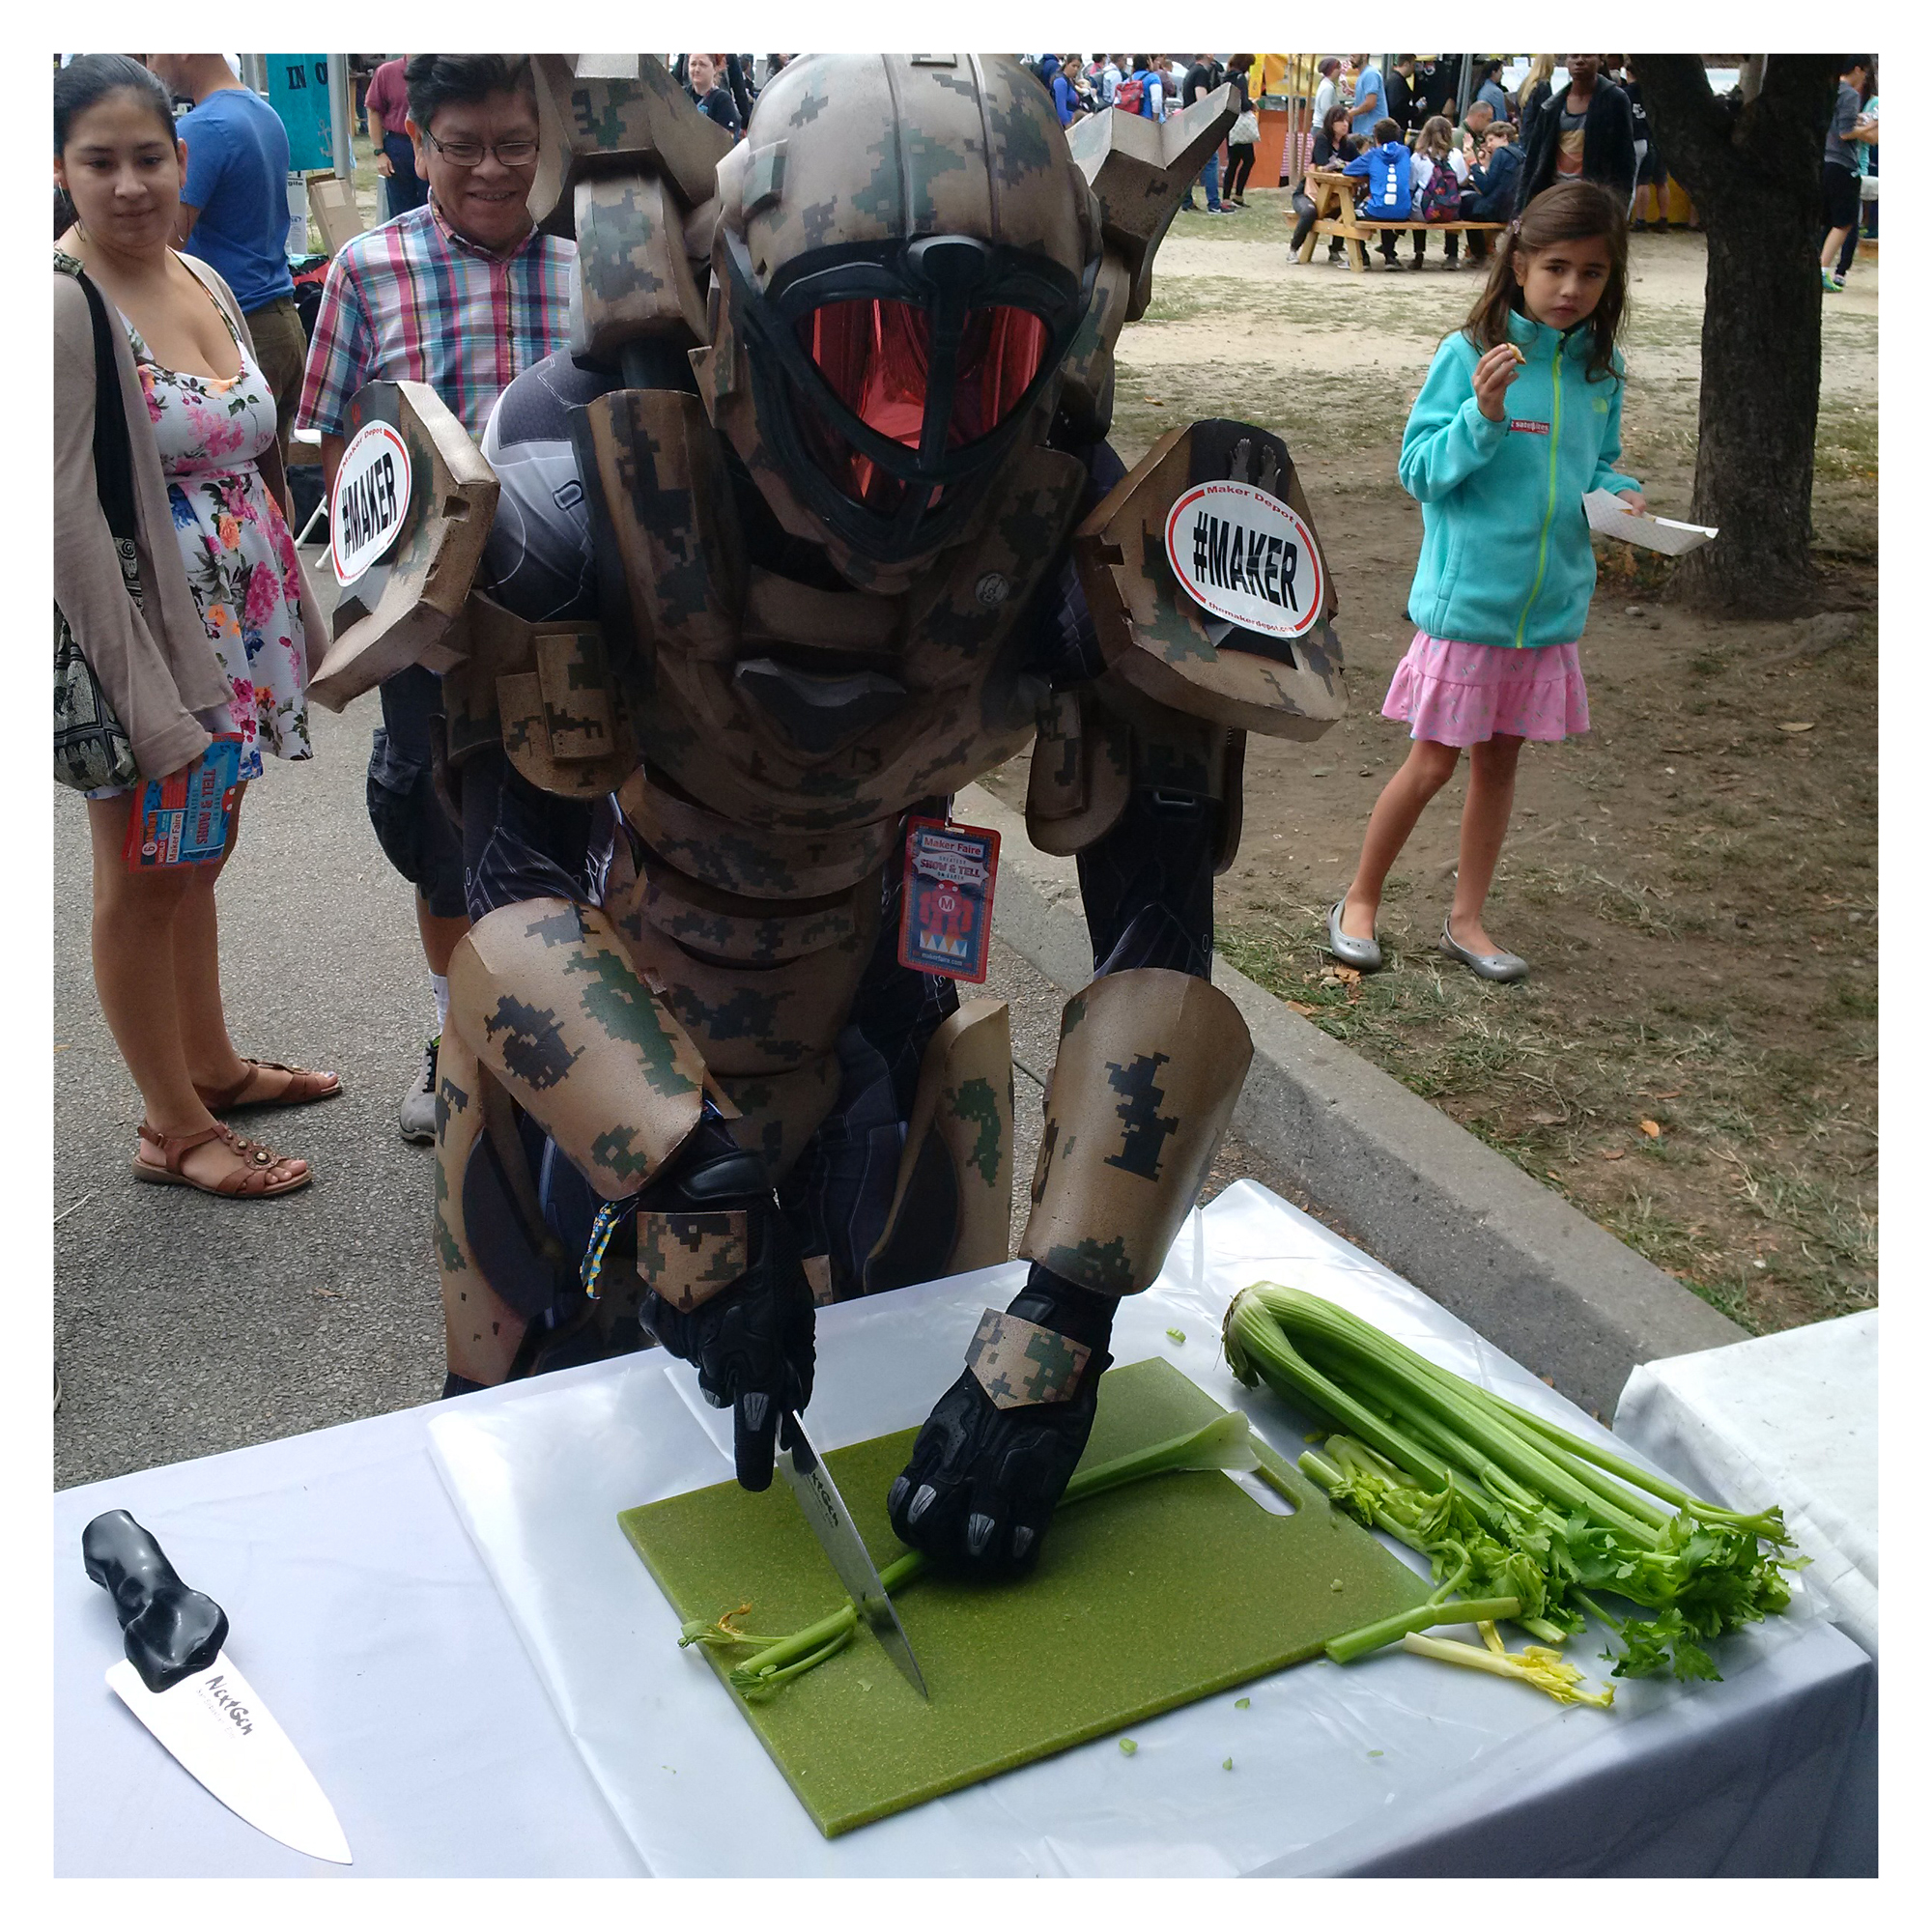 Master Chief Demoing a NextGen Knife at Maker Faire